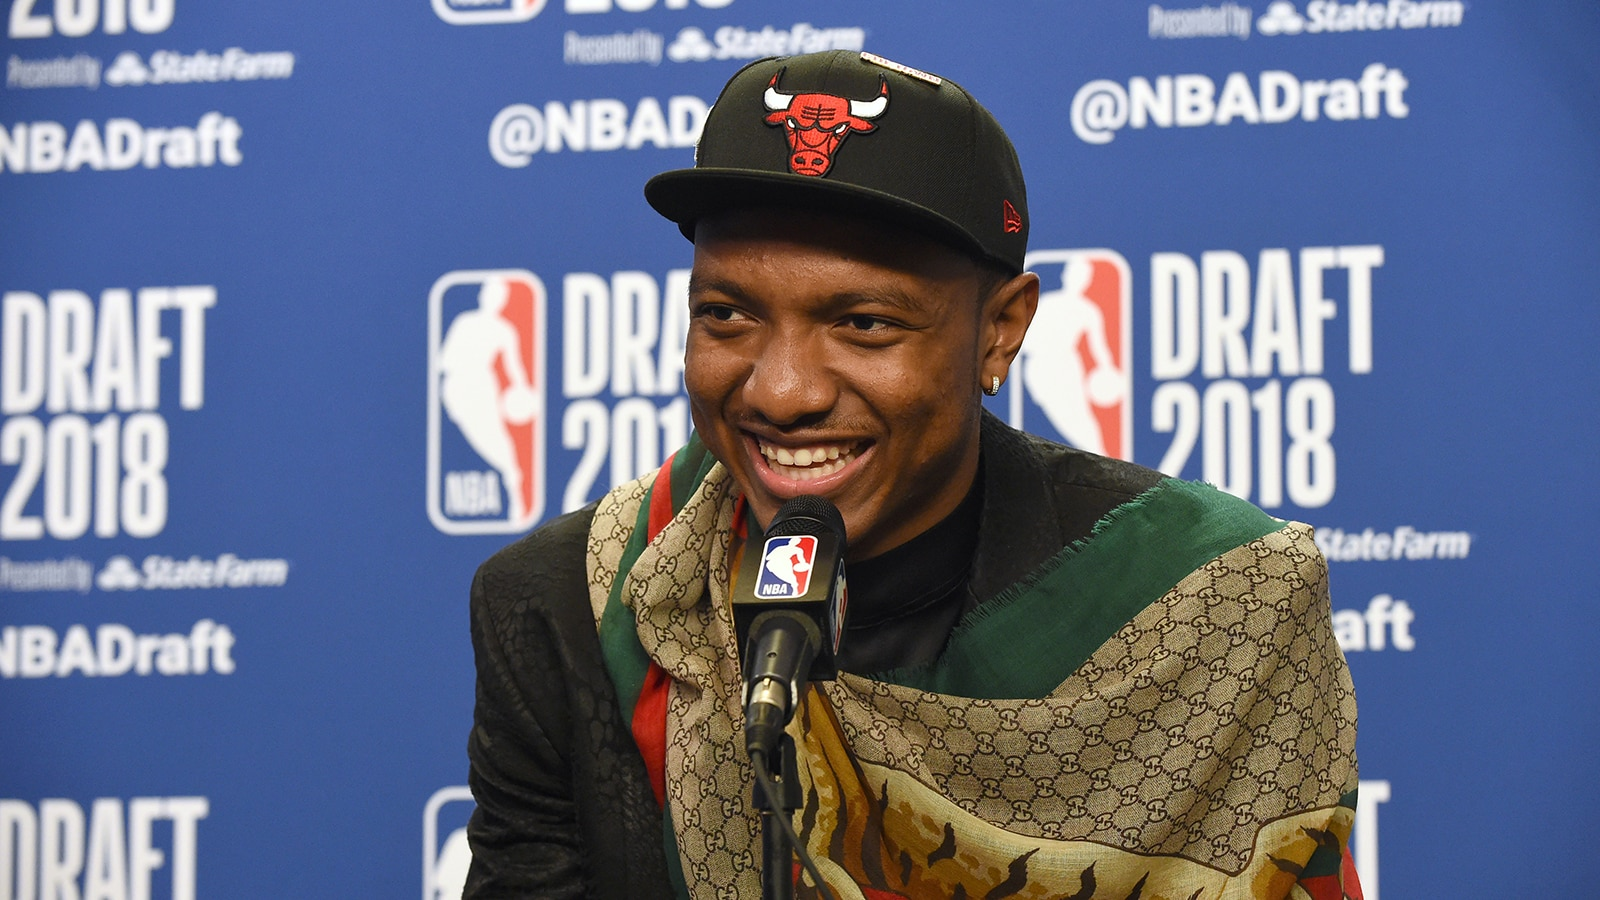 Chicago Bulls Select Wendell Carter Jr. and Chandler Hutchison in 2018 Draft